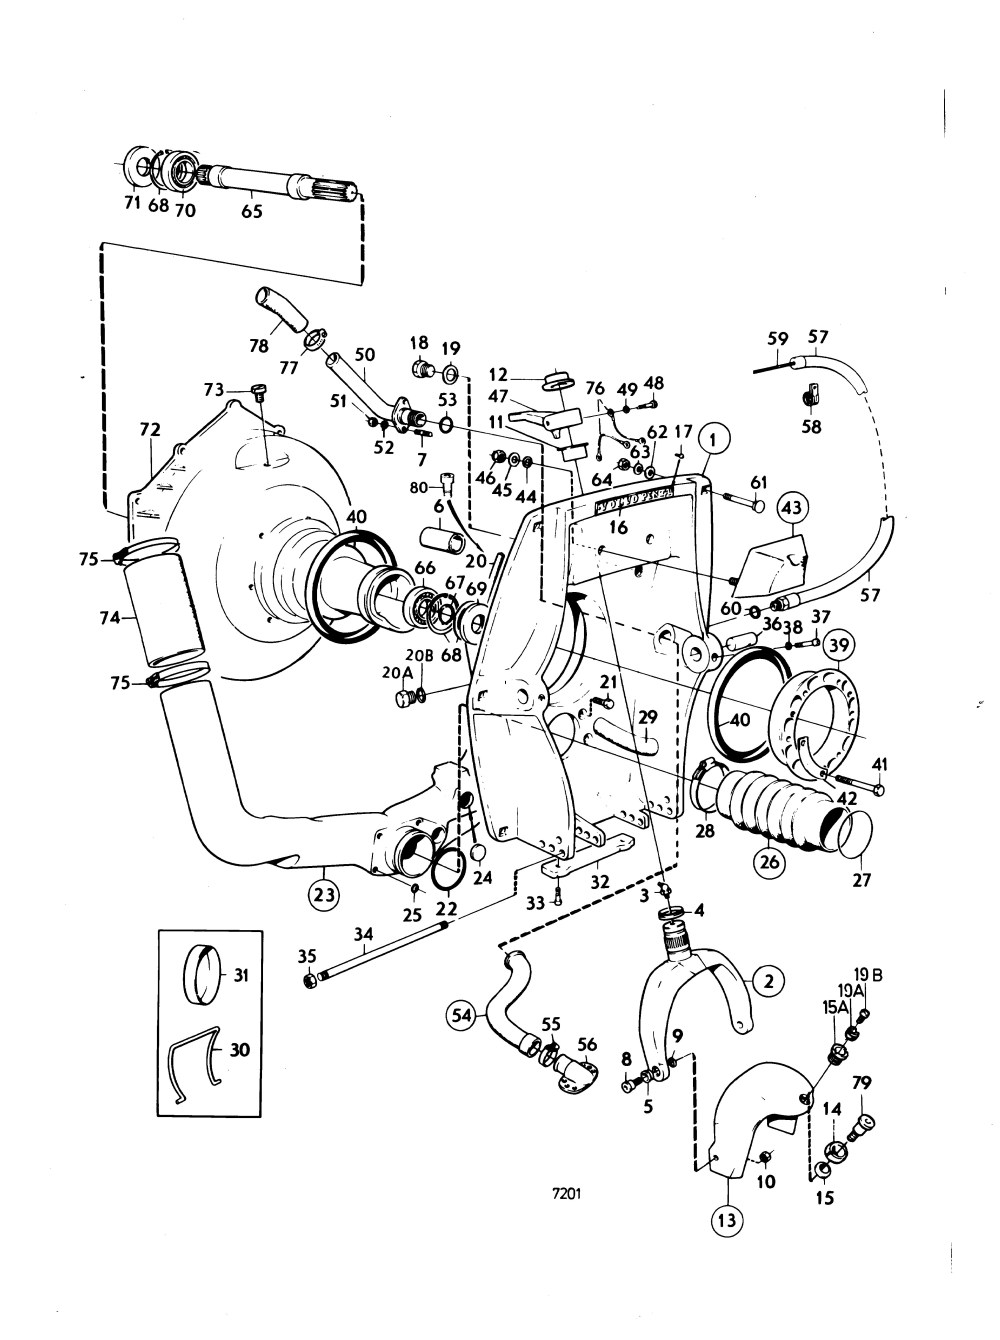 medium resolution of 75 buick wiring diagram worksheet and wiring diagram u2022 rh bookinc co 2004 vw beetle engine